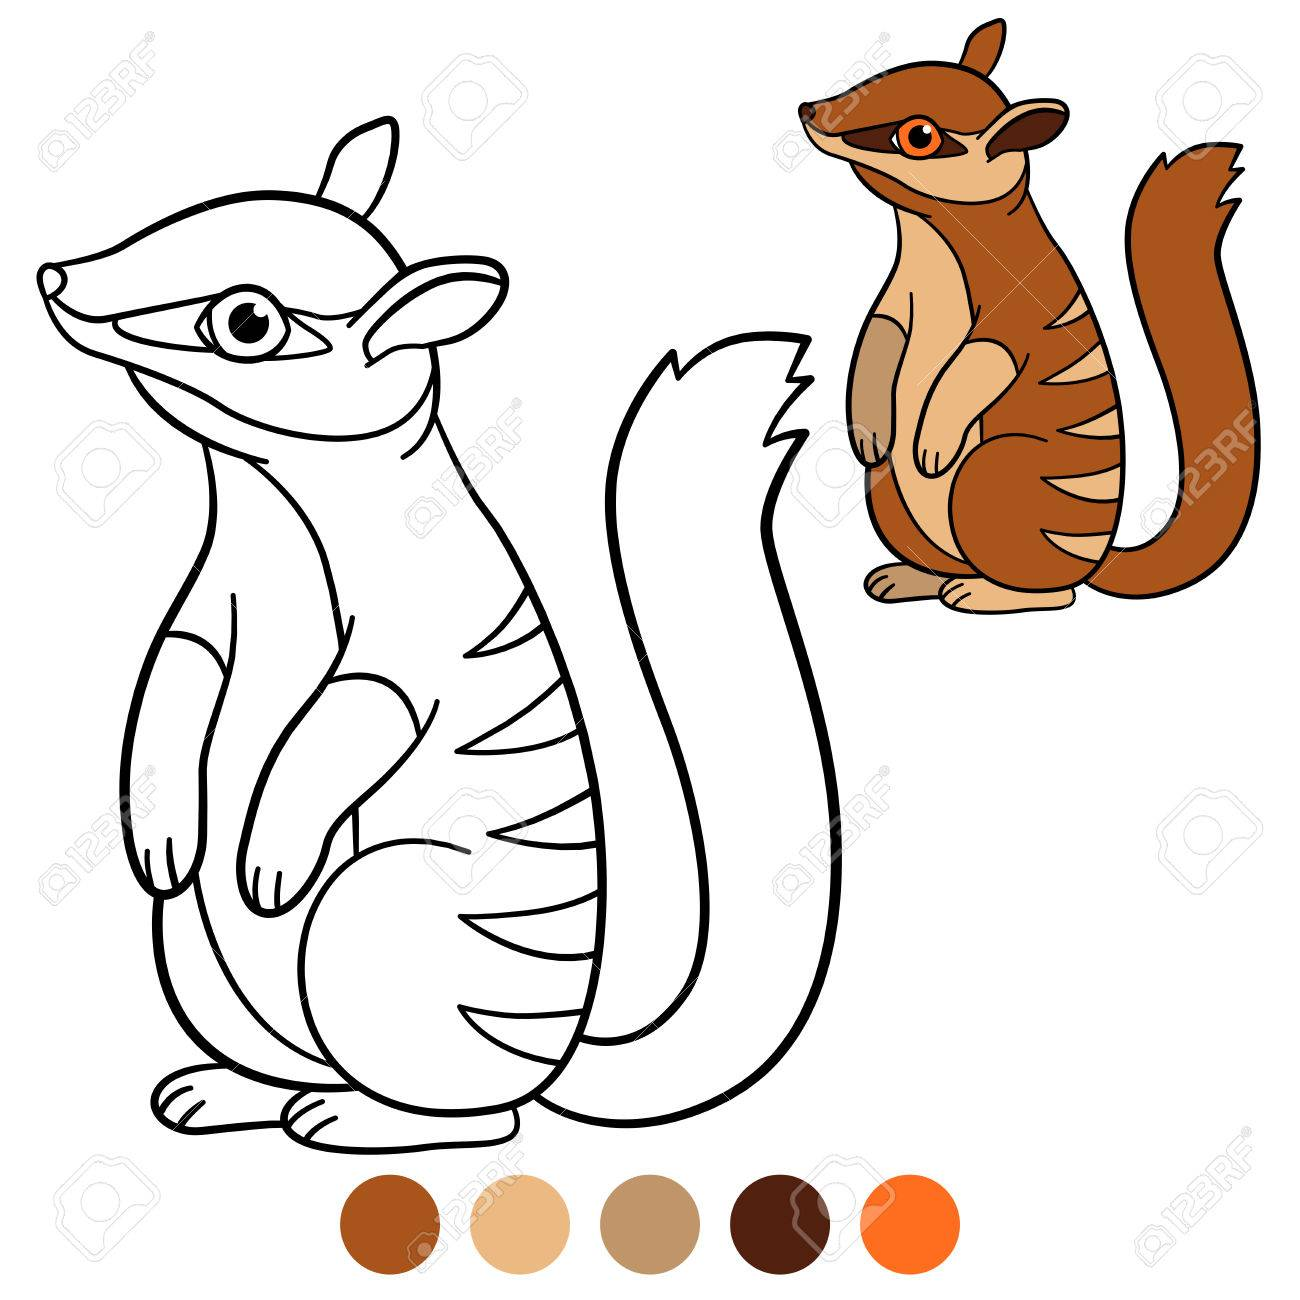 Coloring Page. Little Cute Baby Numbat Stands And Smile. Stock Vector    83316049